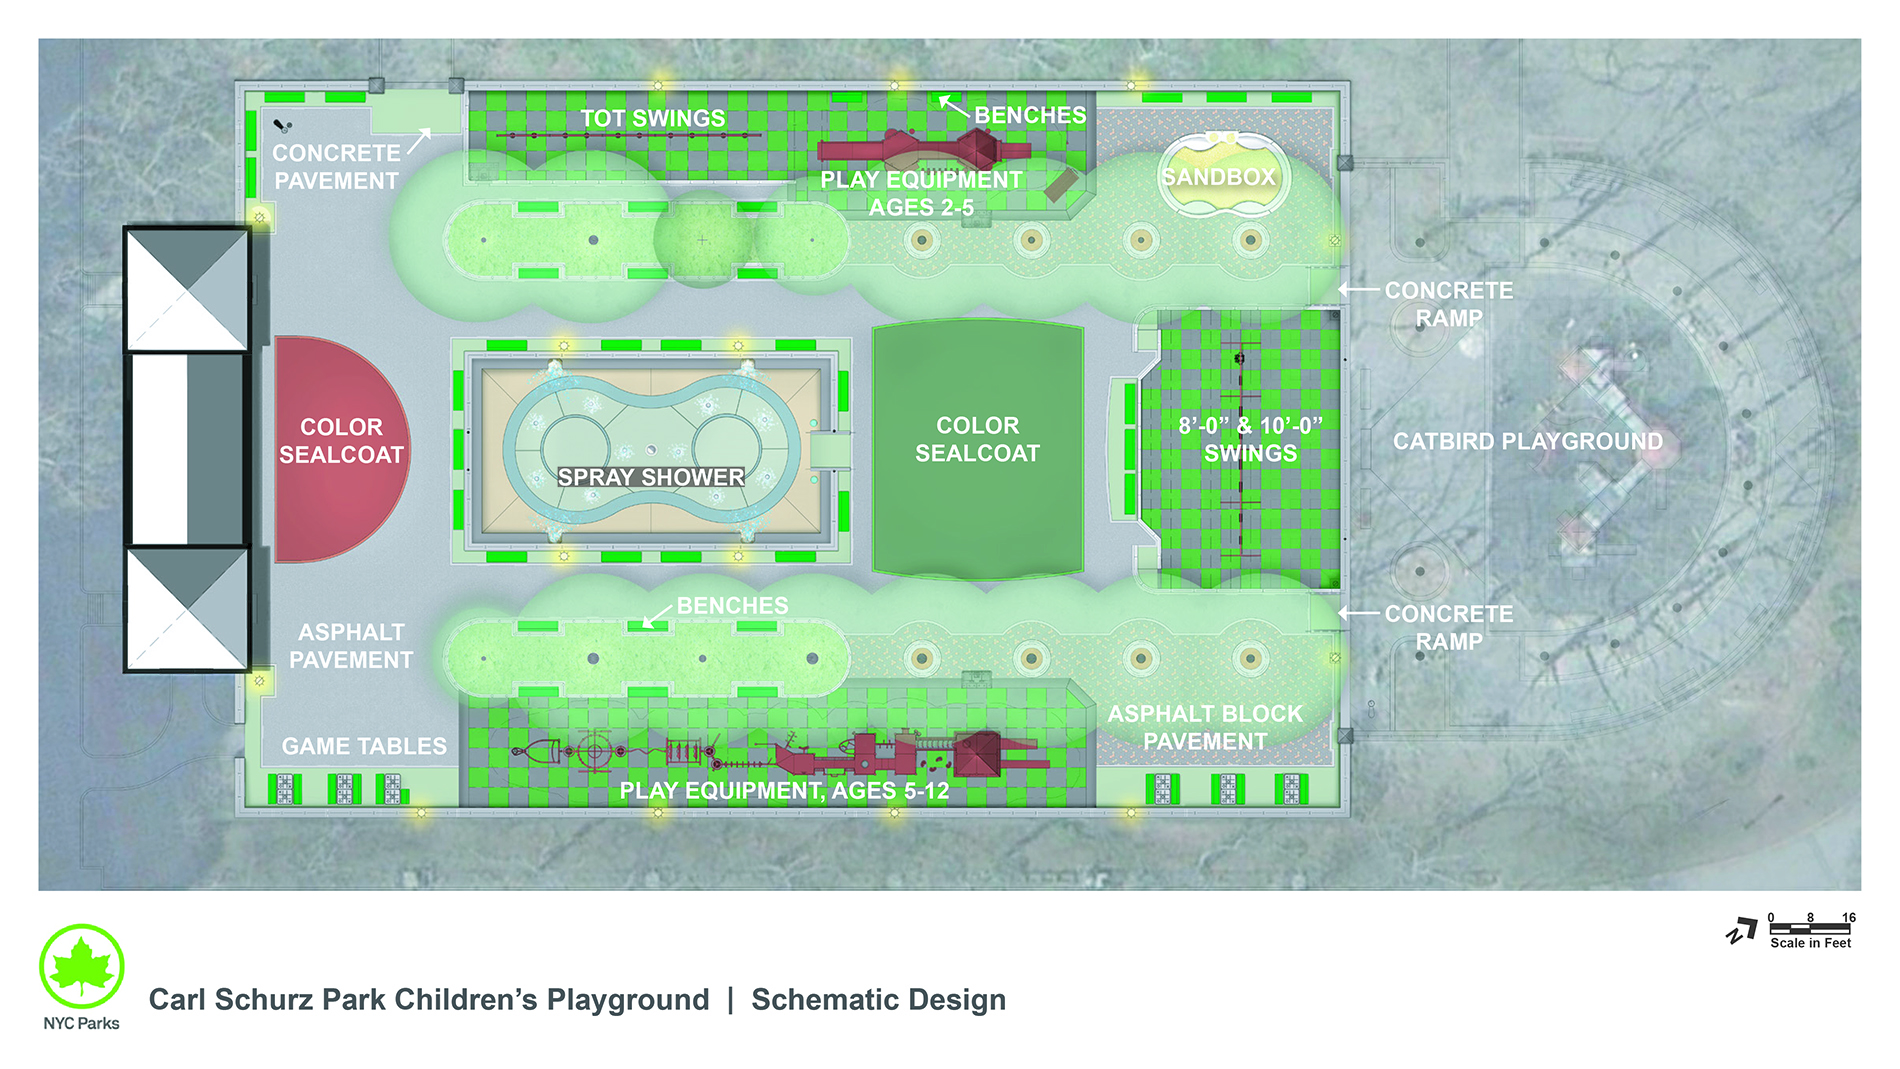 Design of Carl Schurz Park Playground Reconstruction